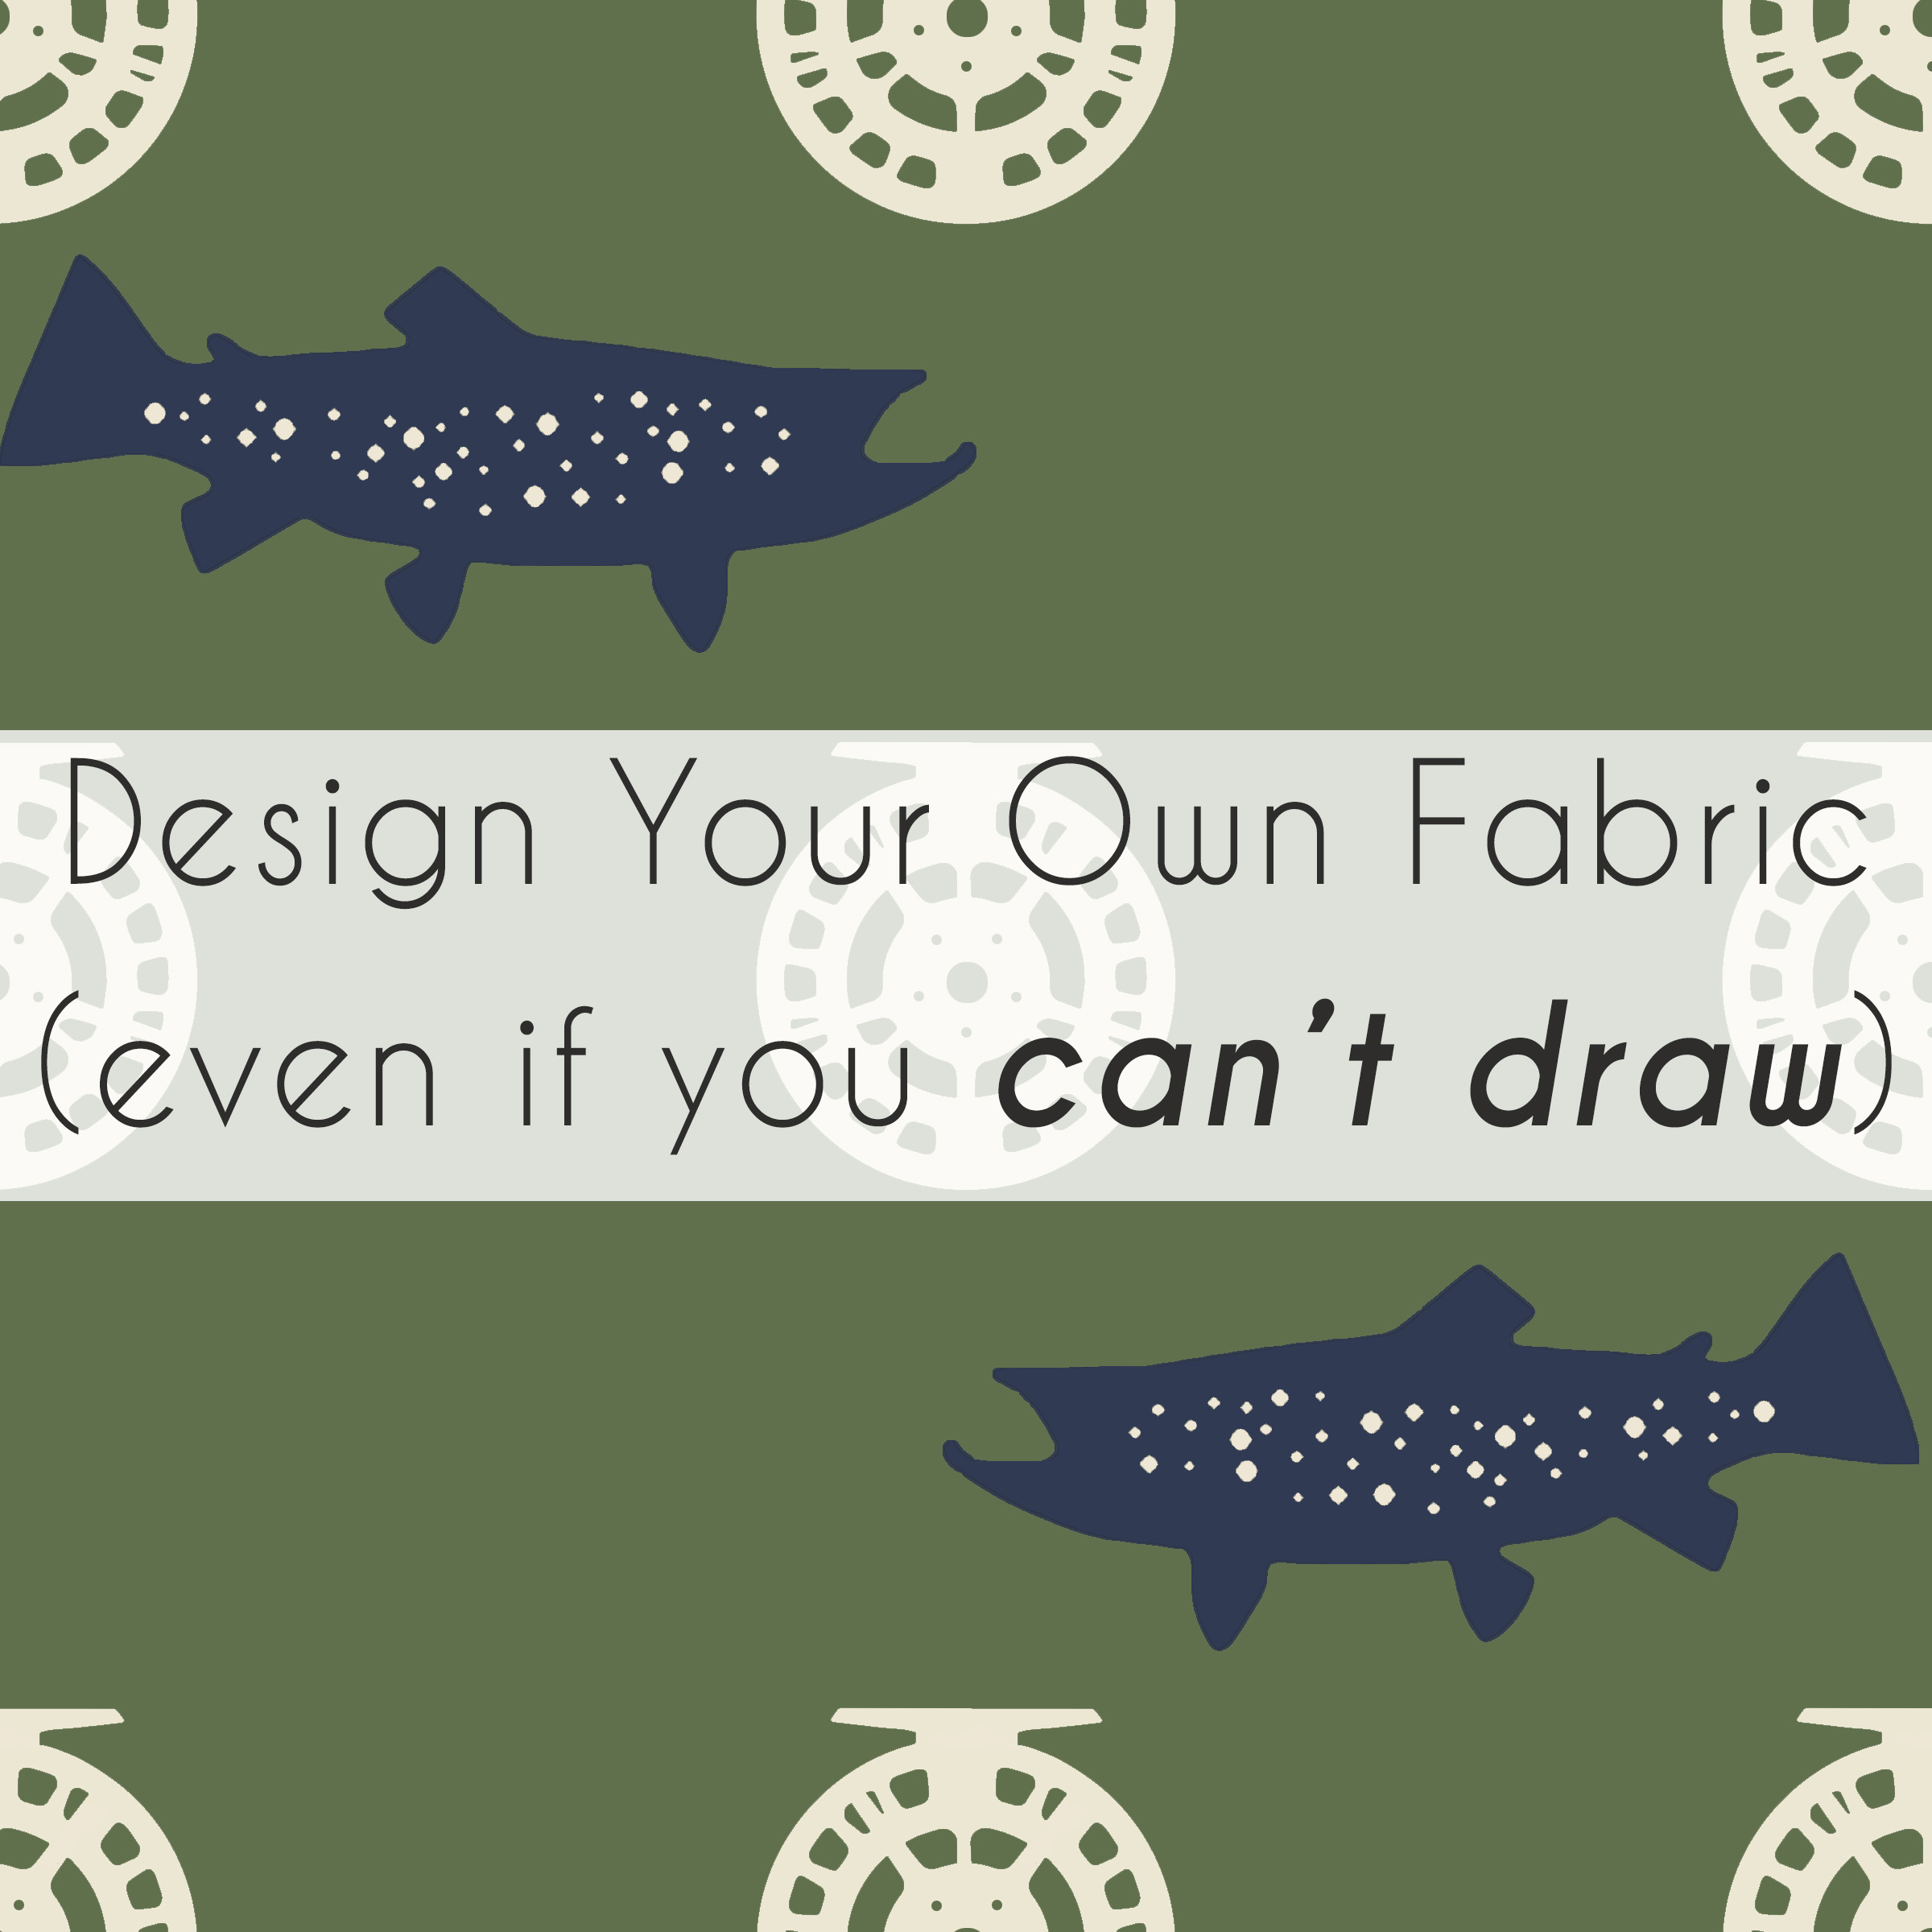 Design Your Own Fabric On House And Home